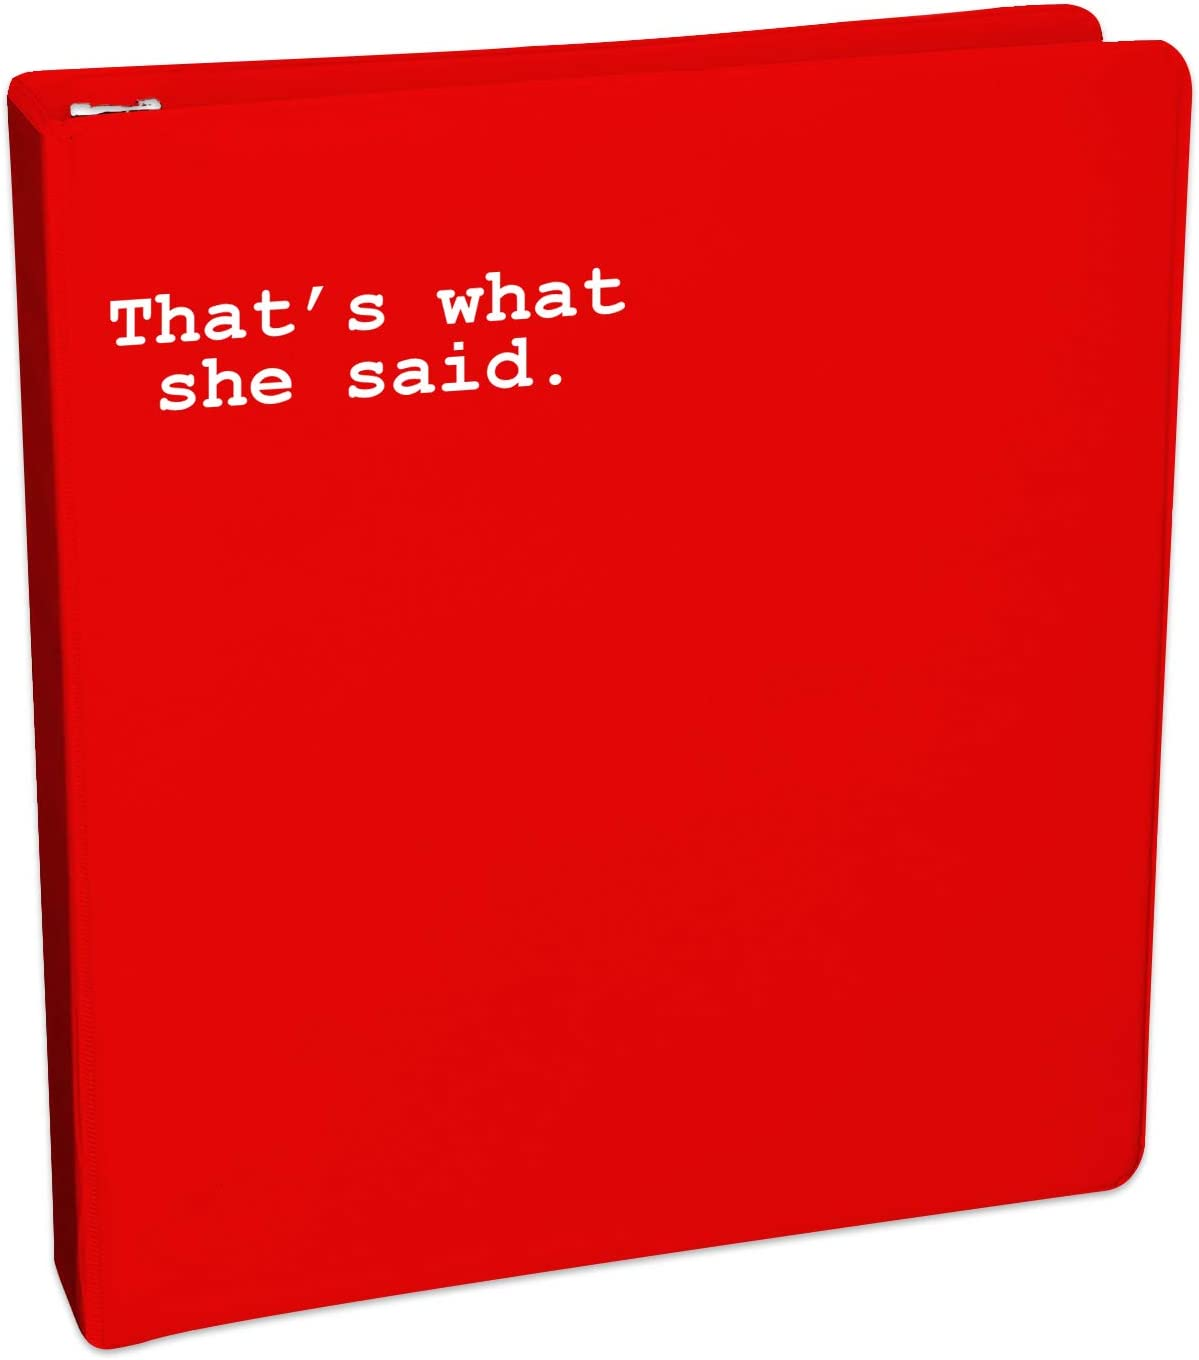 Bargain Max Decals White Thats What She Said Office Sticker Decal Notebook Car Laptop 8